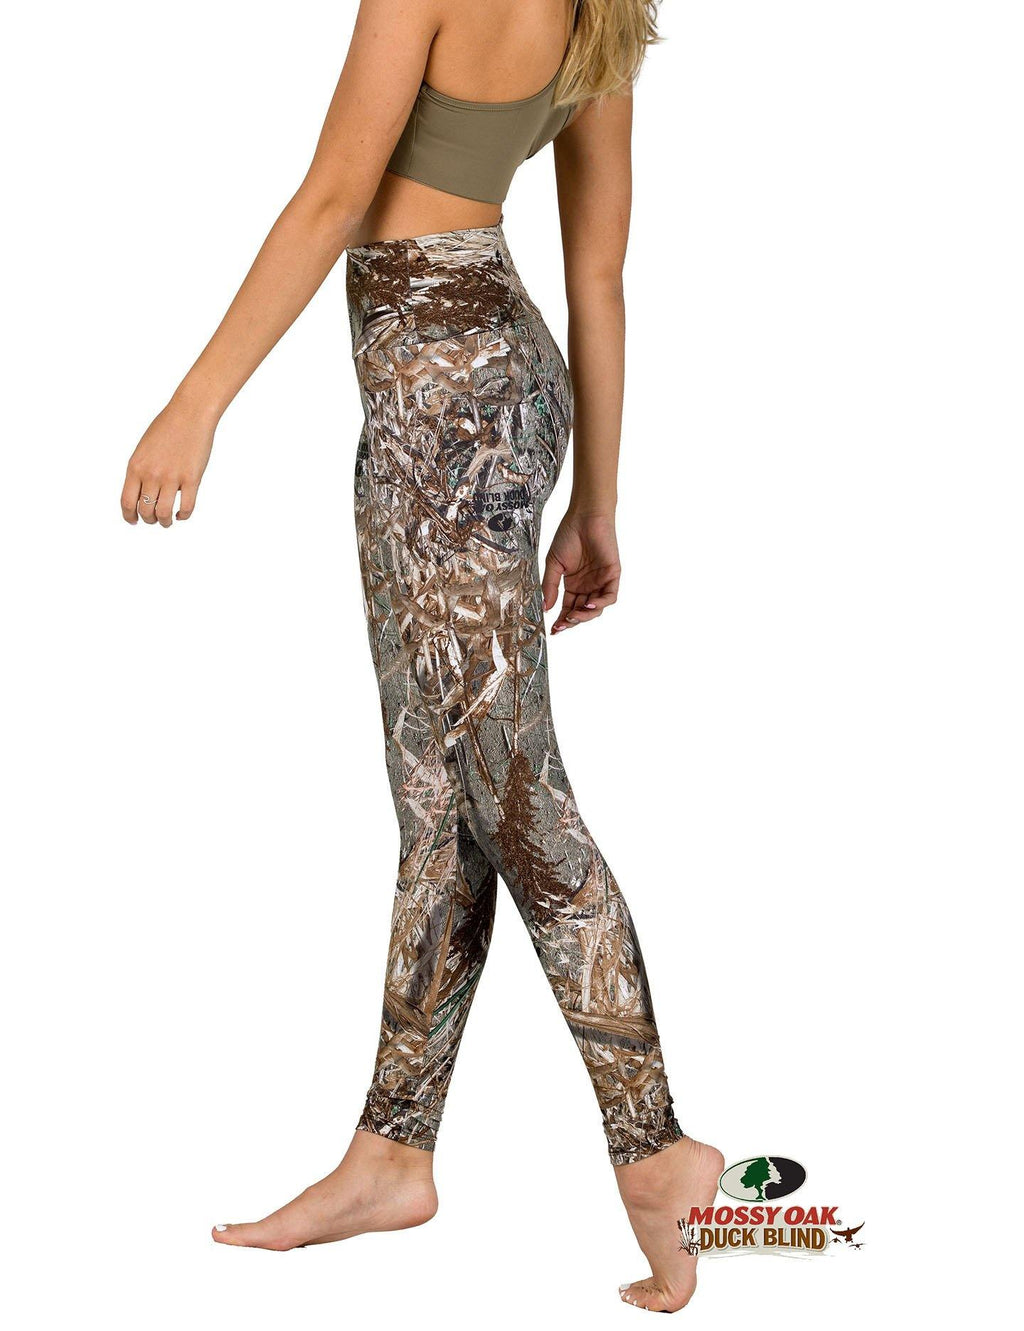 Apsara Leggings High Waist Full Length, Mossy Oak Duck Blind